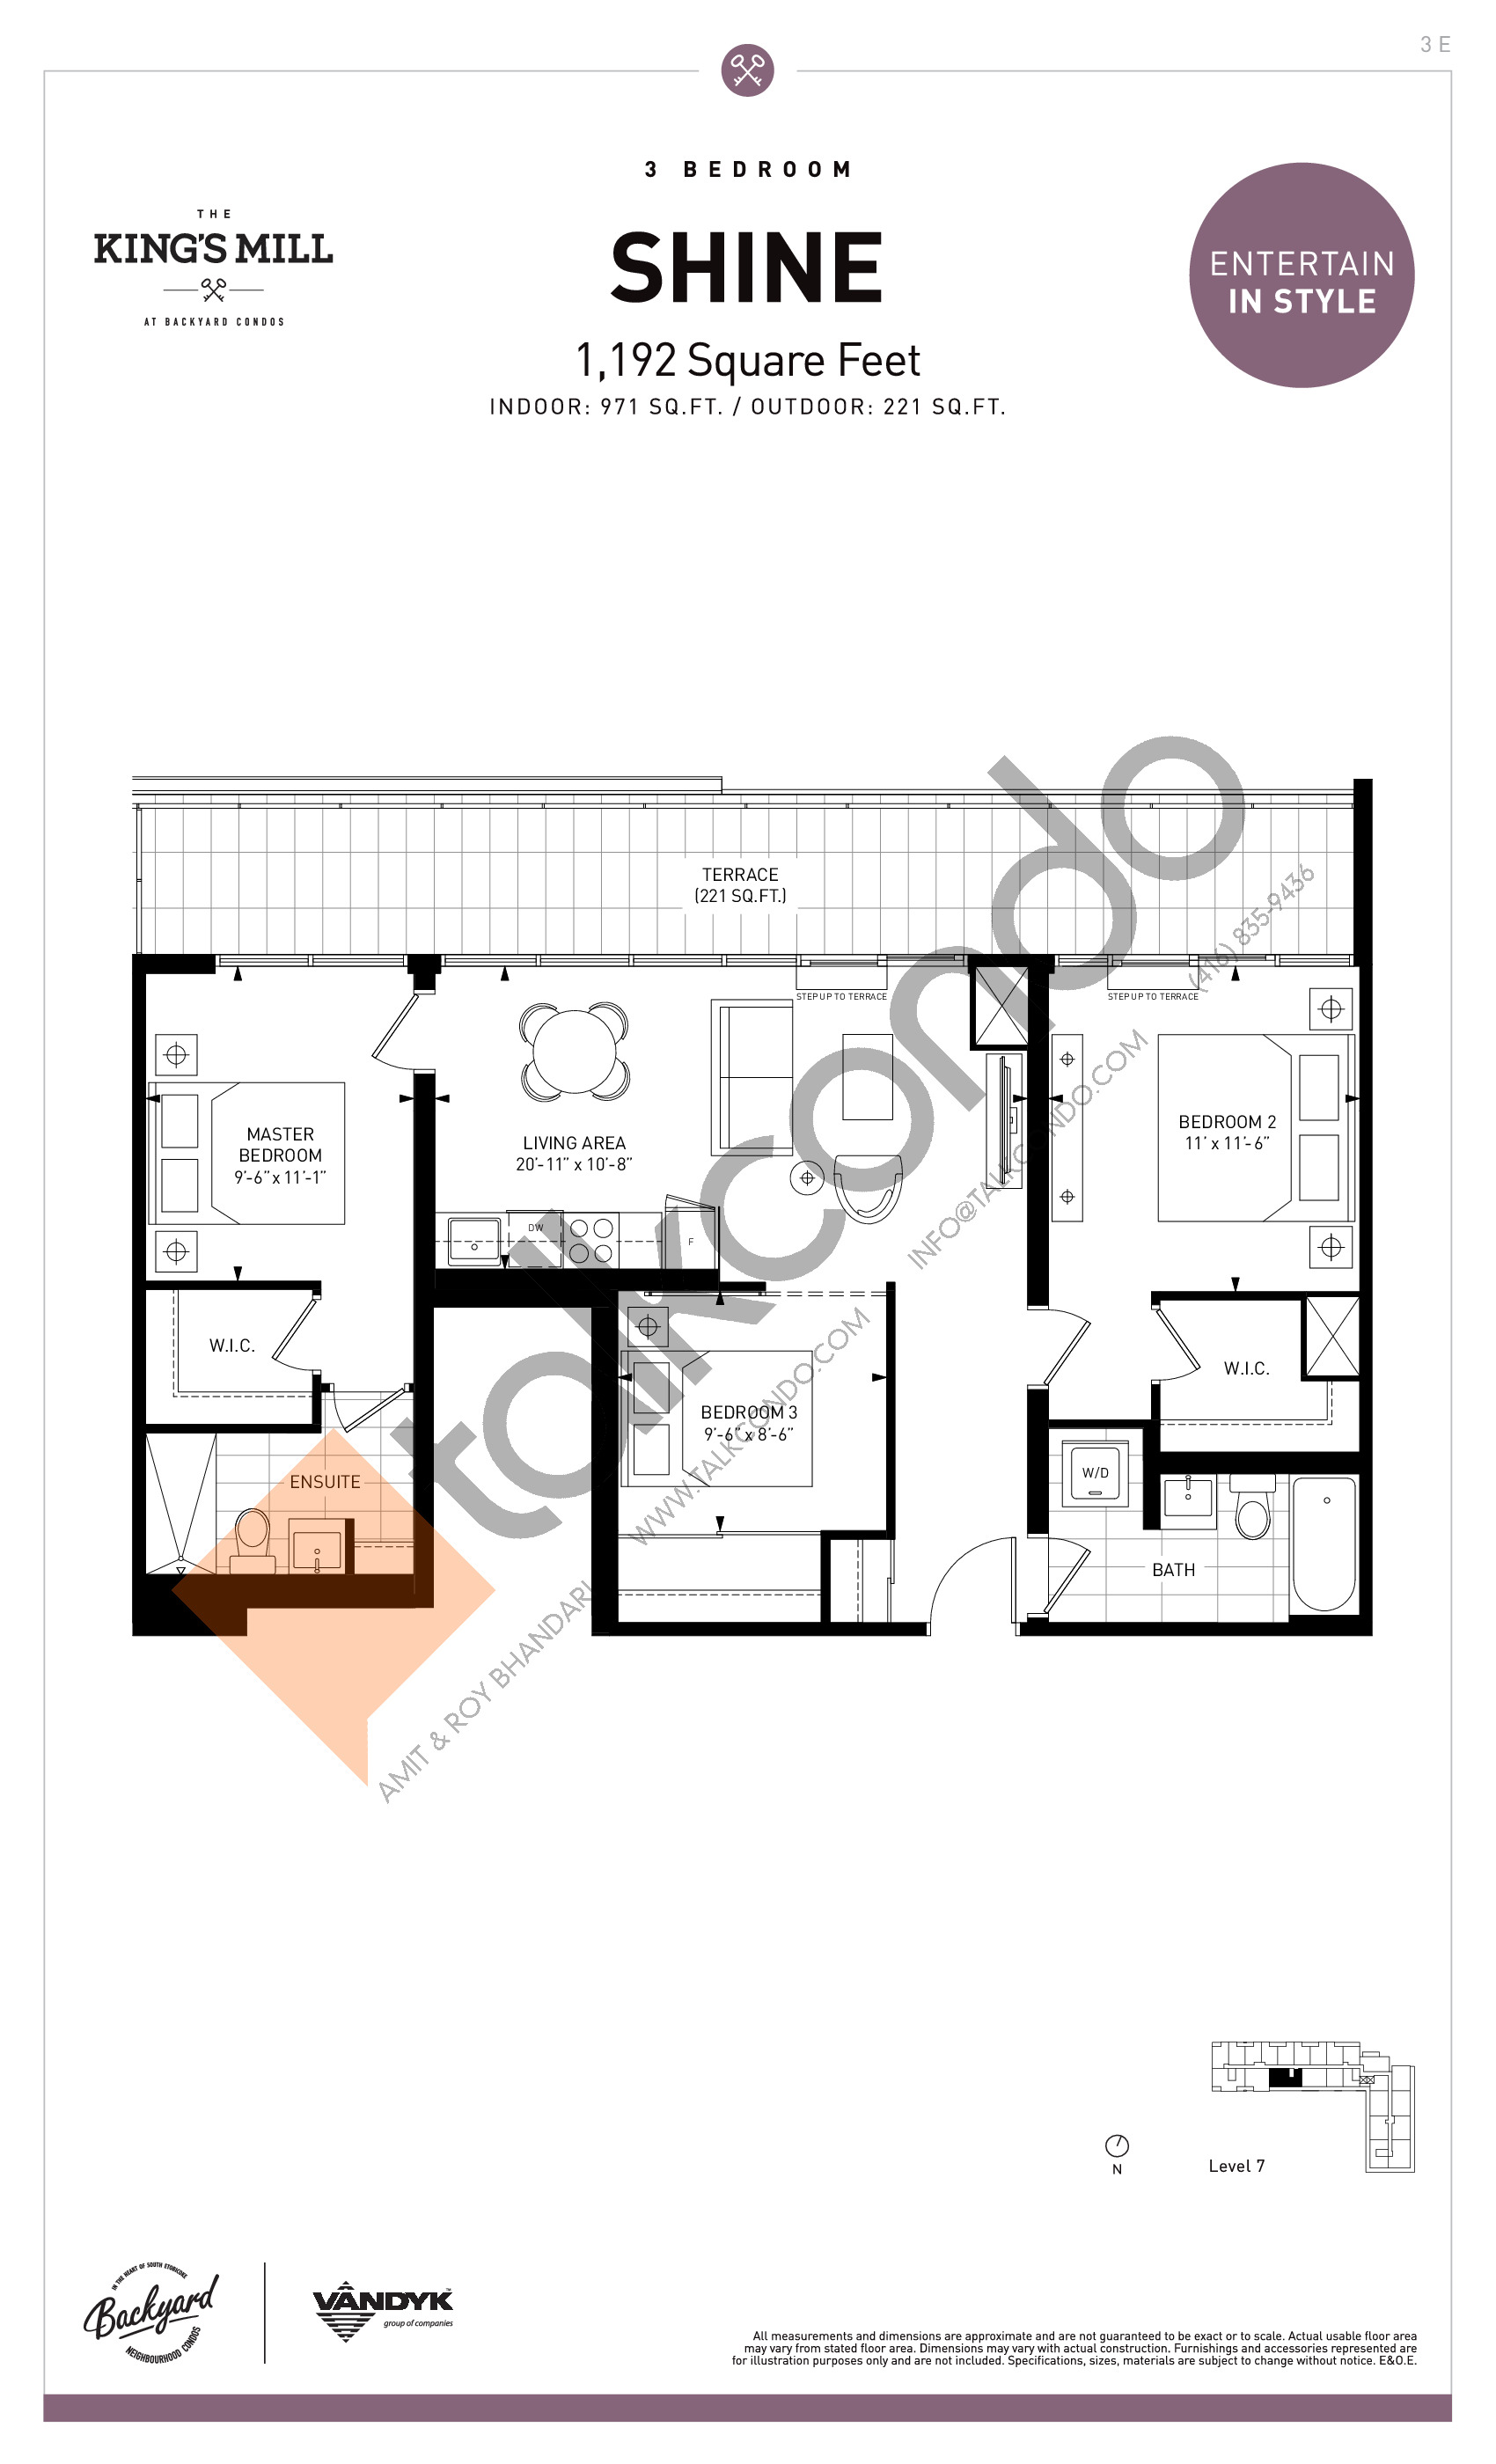 Shine Floor Plan at The King's Mill Condos - 971 sq.ft